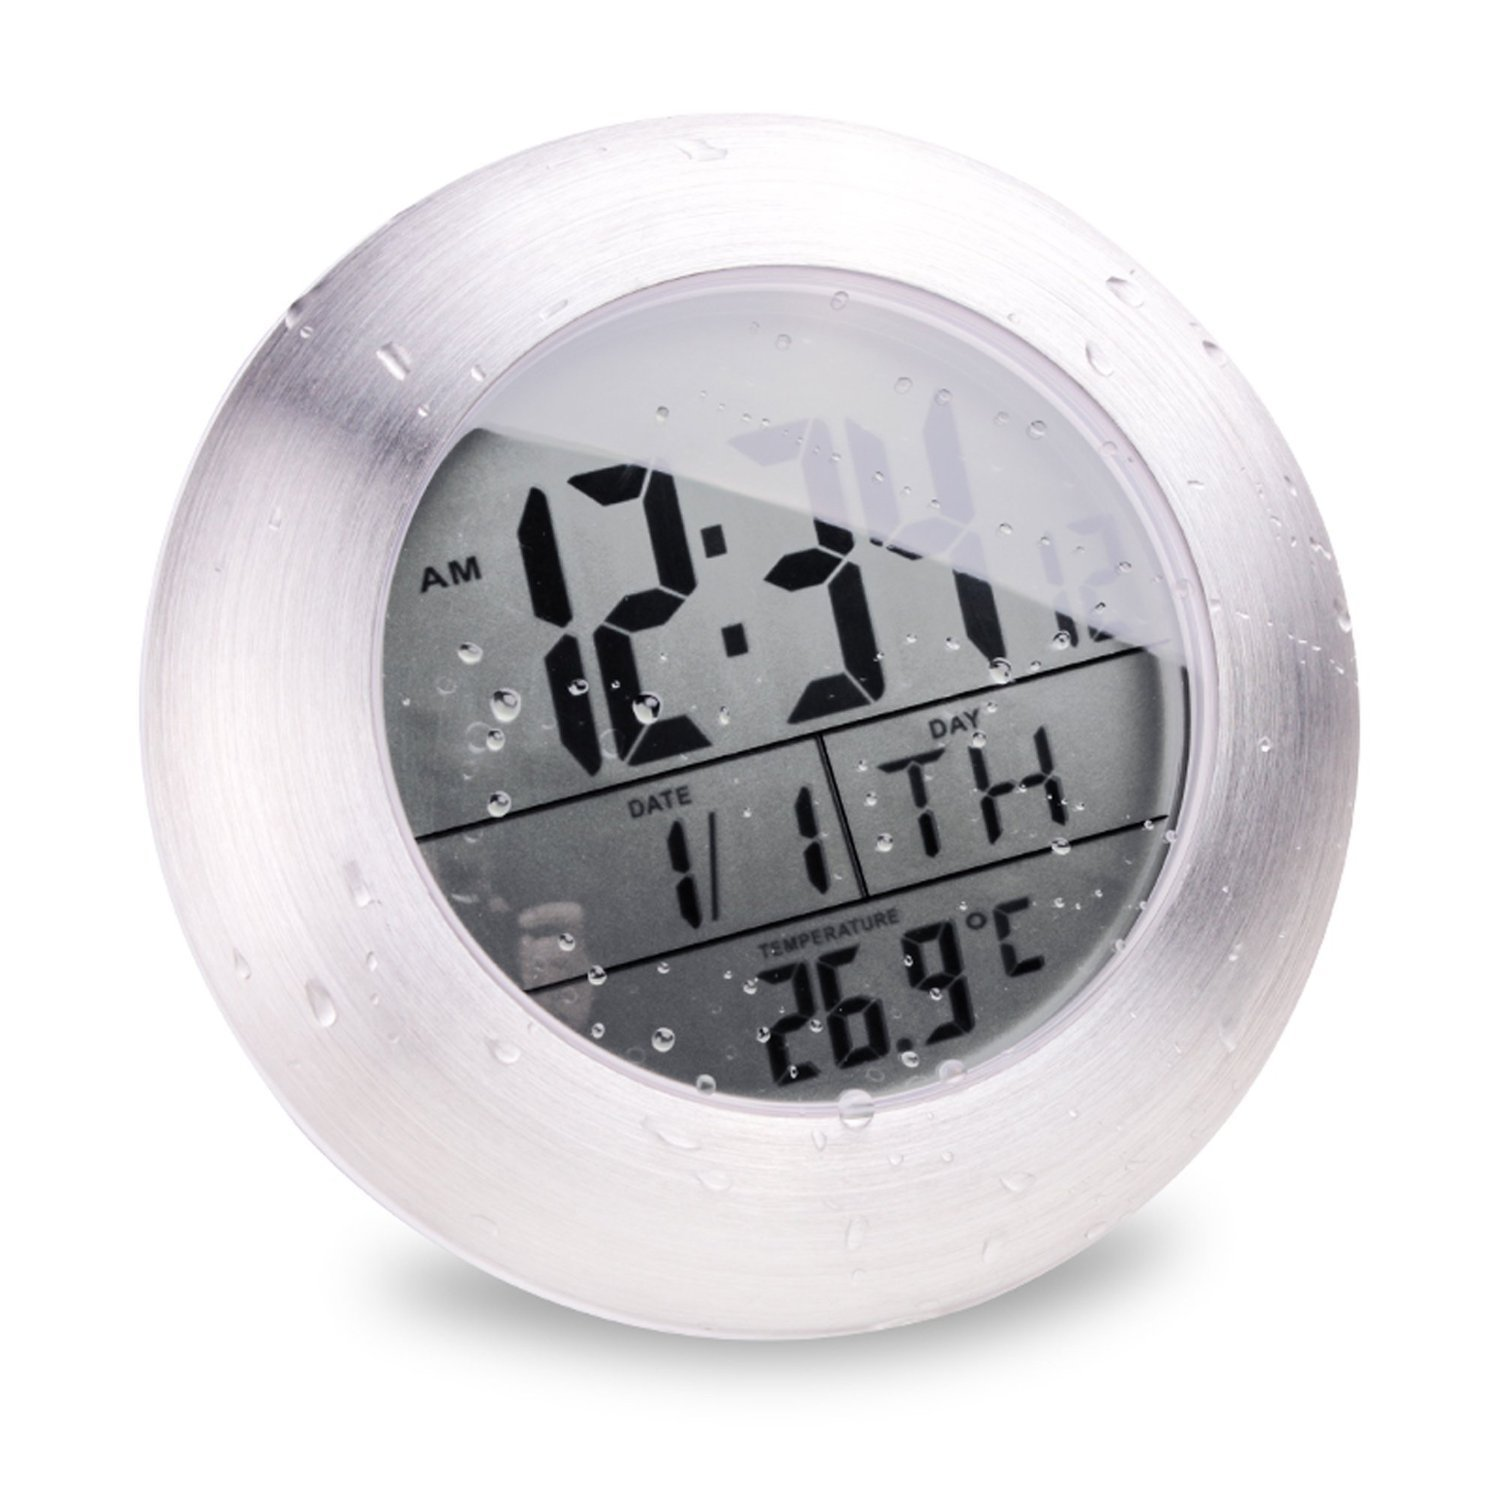 Seiorca Waterproof Digital Bathroom Shower Clock of 4 Suction Cup Display Date Temperature